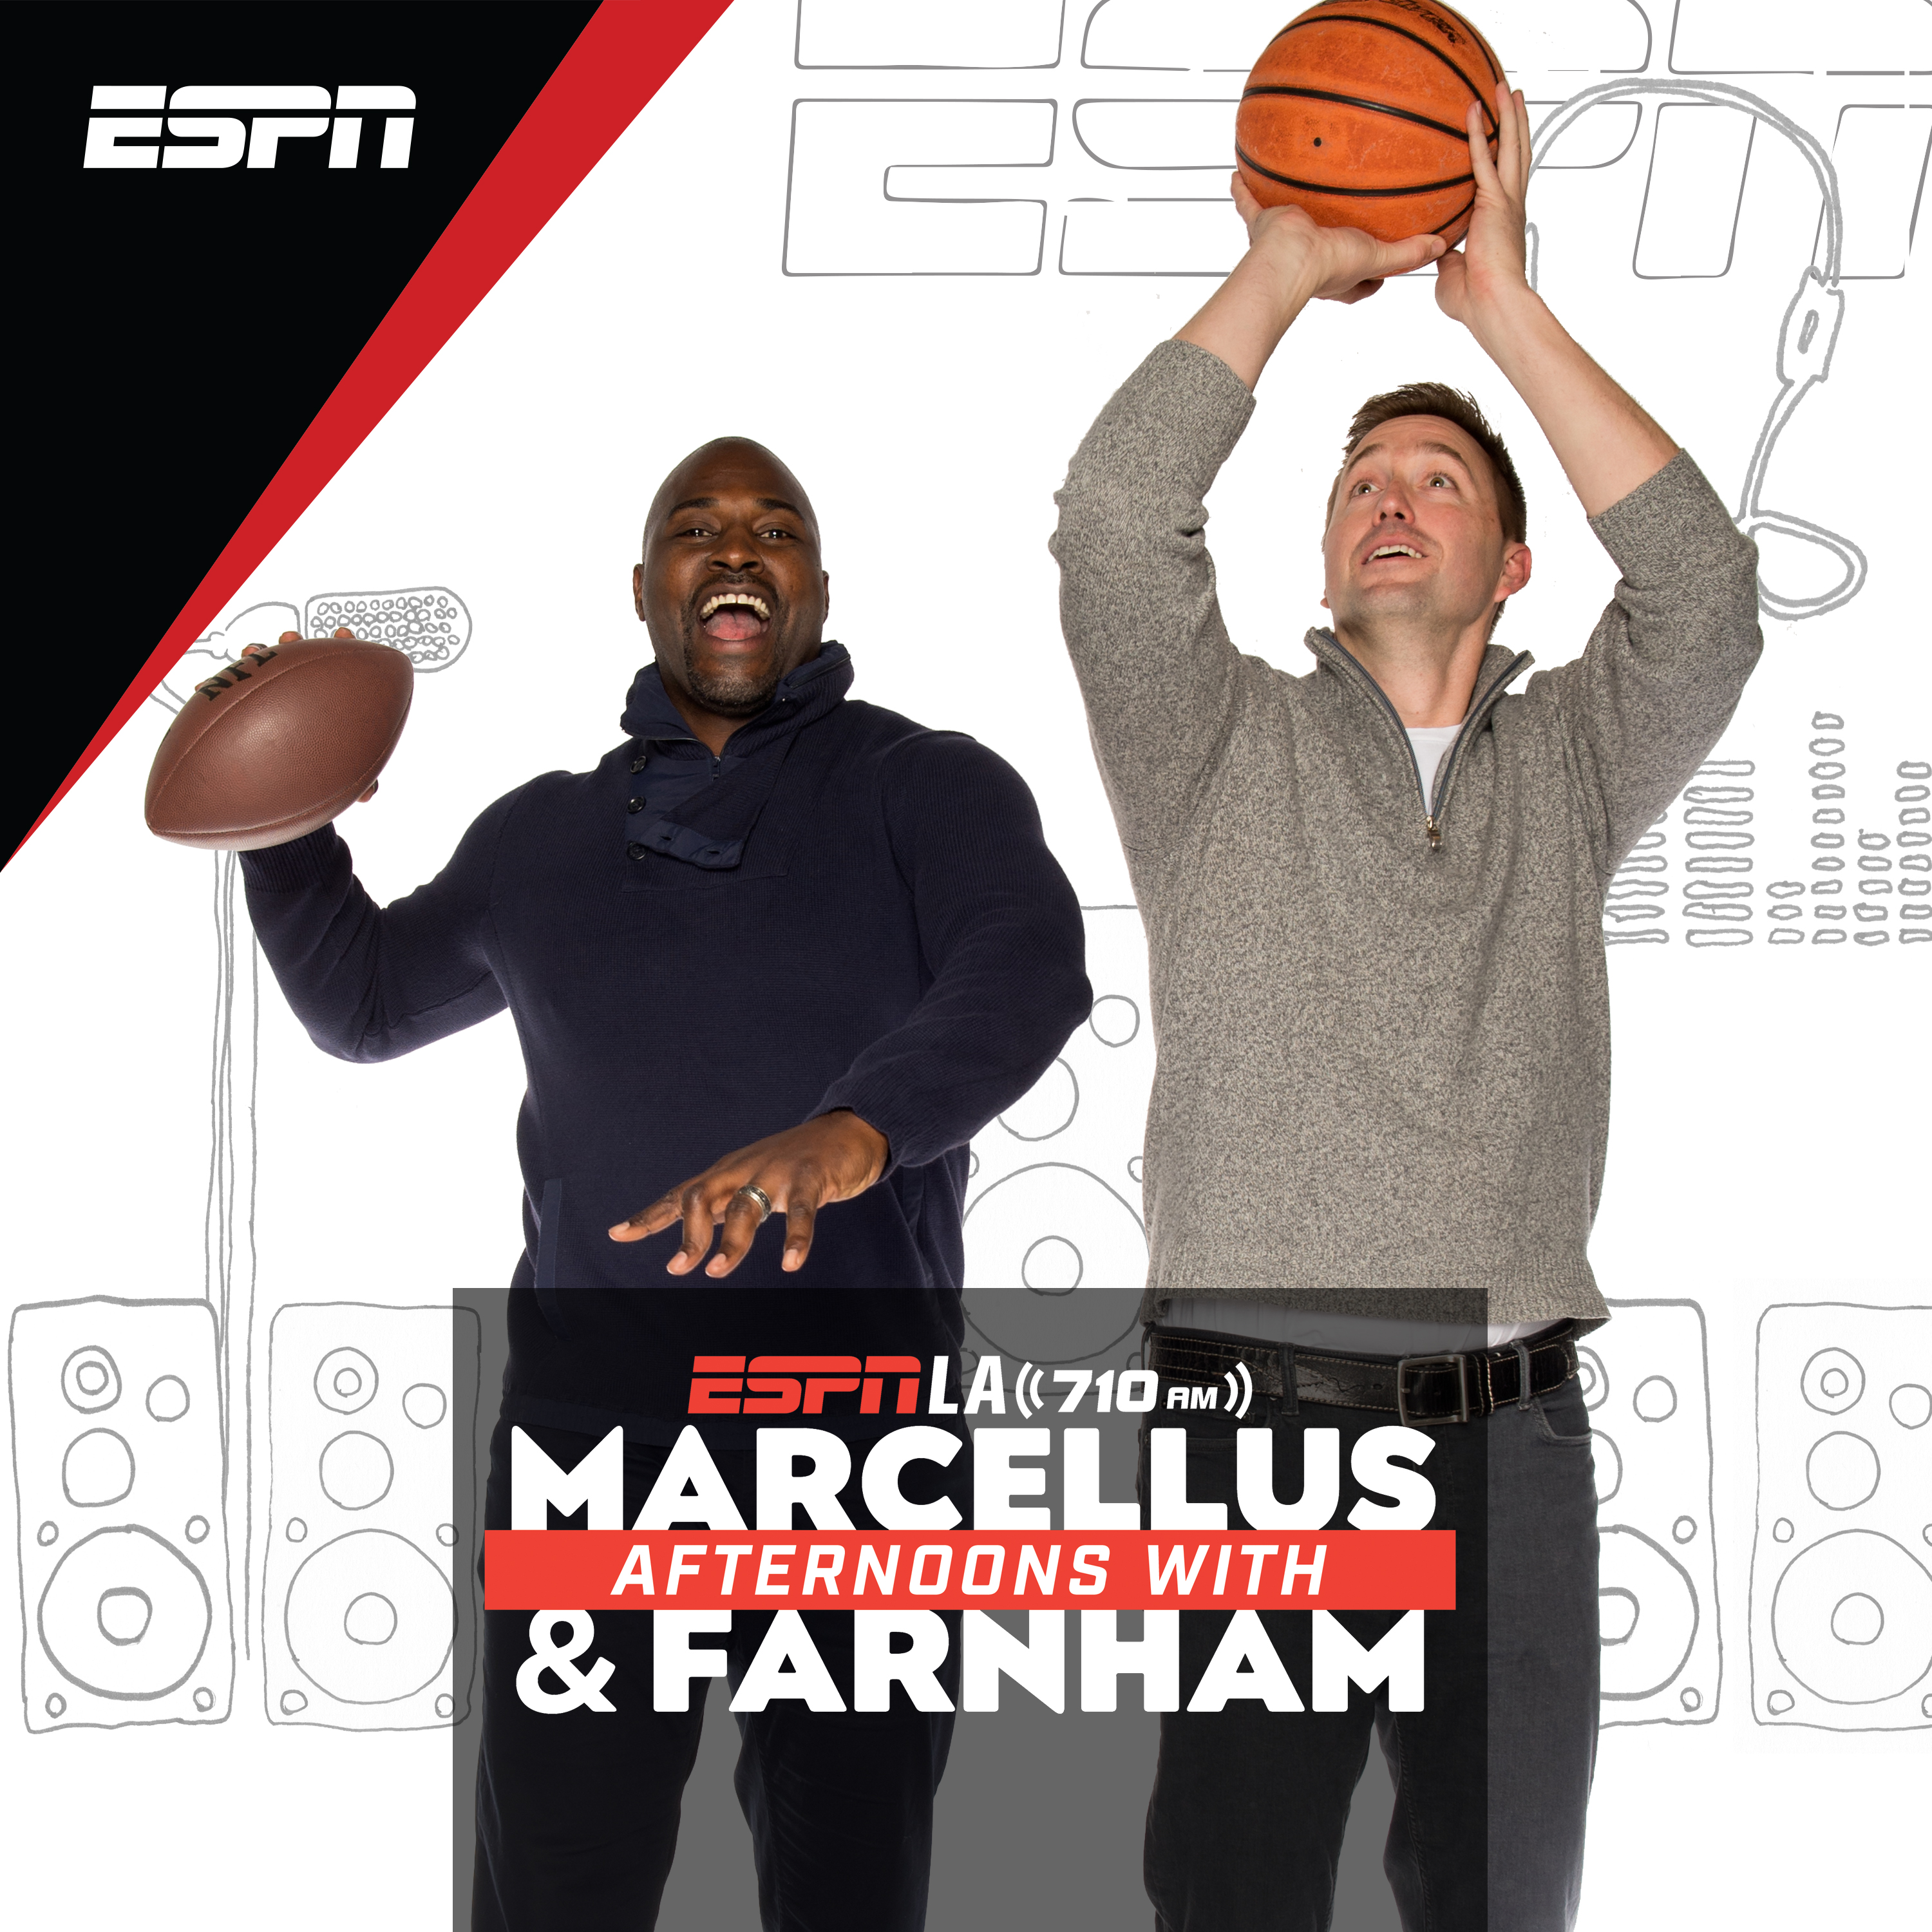 Afternoons on ESPNLA with Marcellus and Farnham